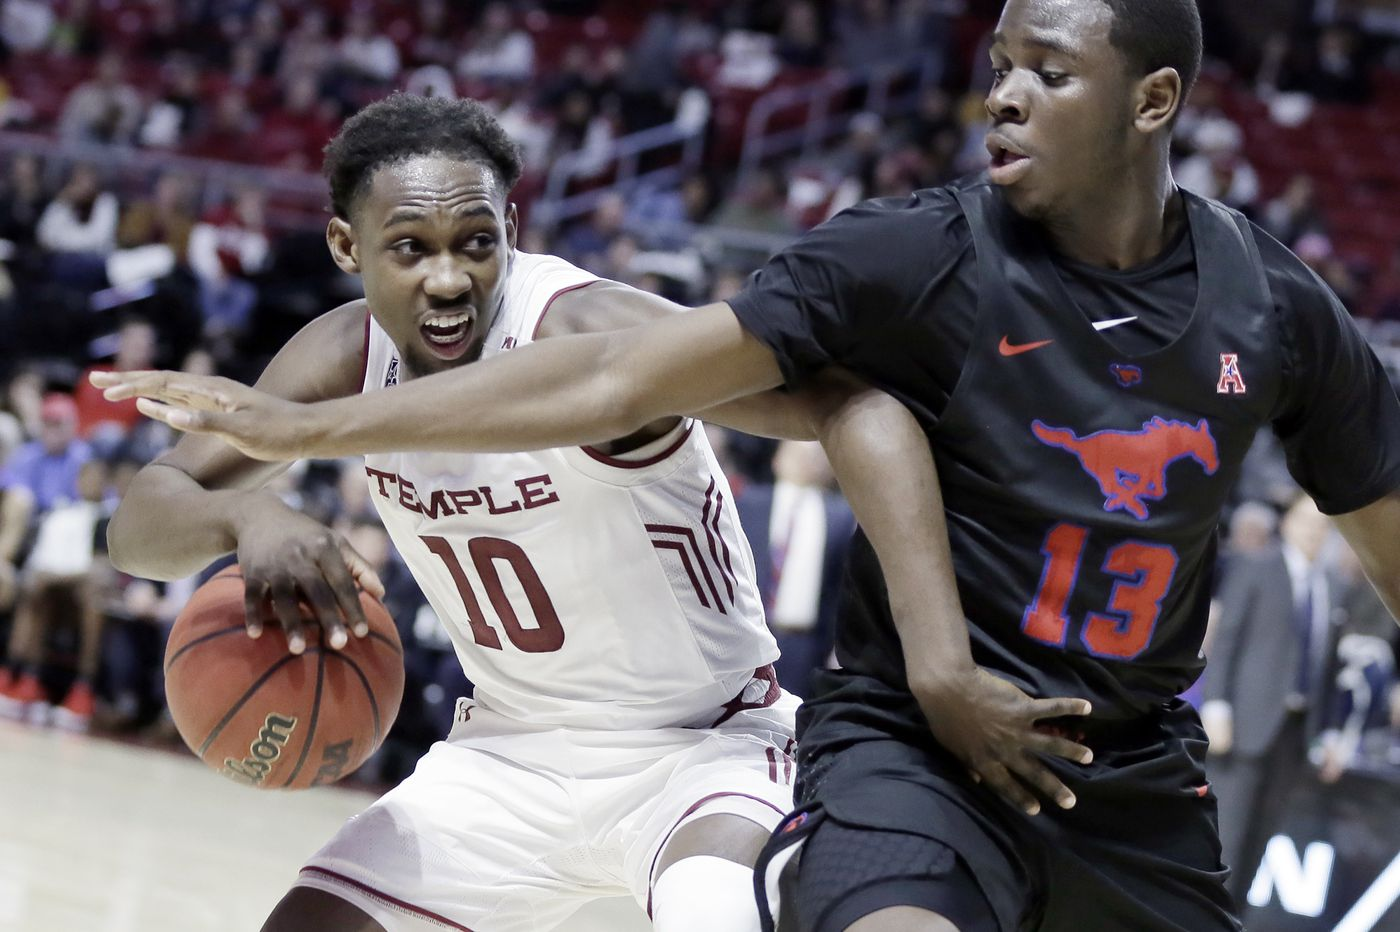 Shizz Alston scores 13 straight points down the stretch as Temple beats SMU, 82-74